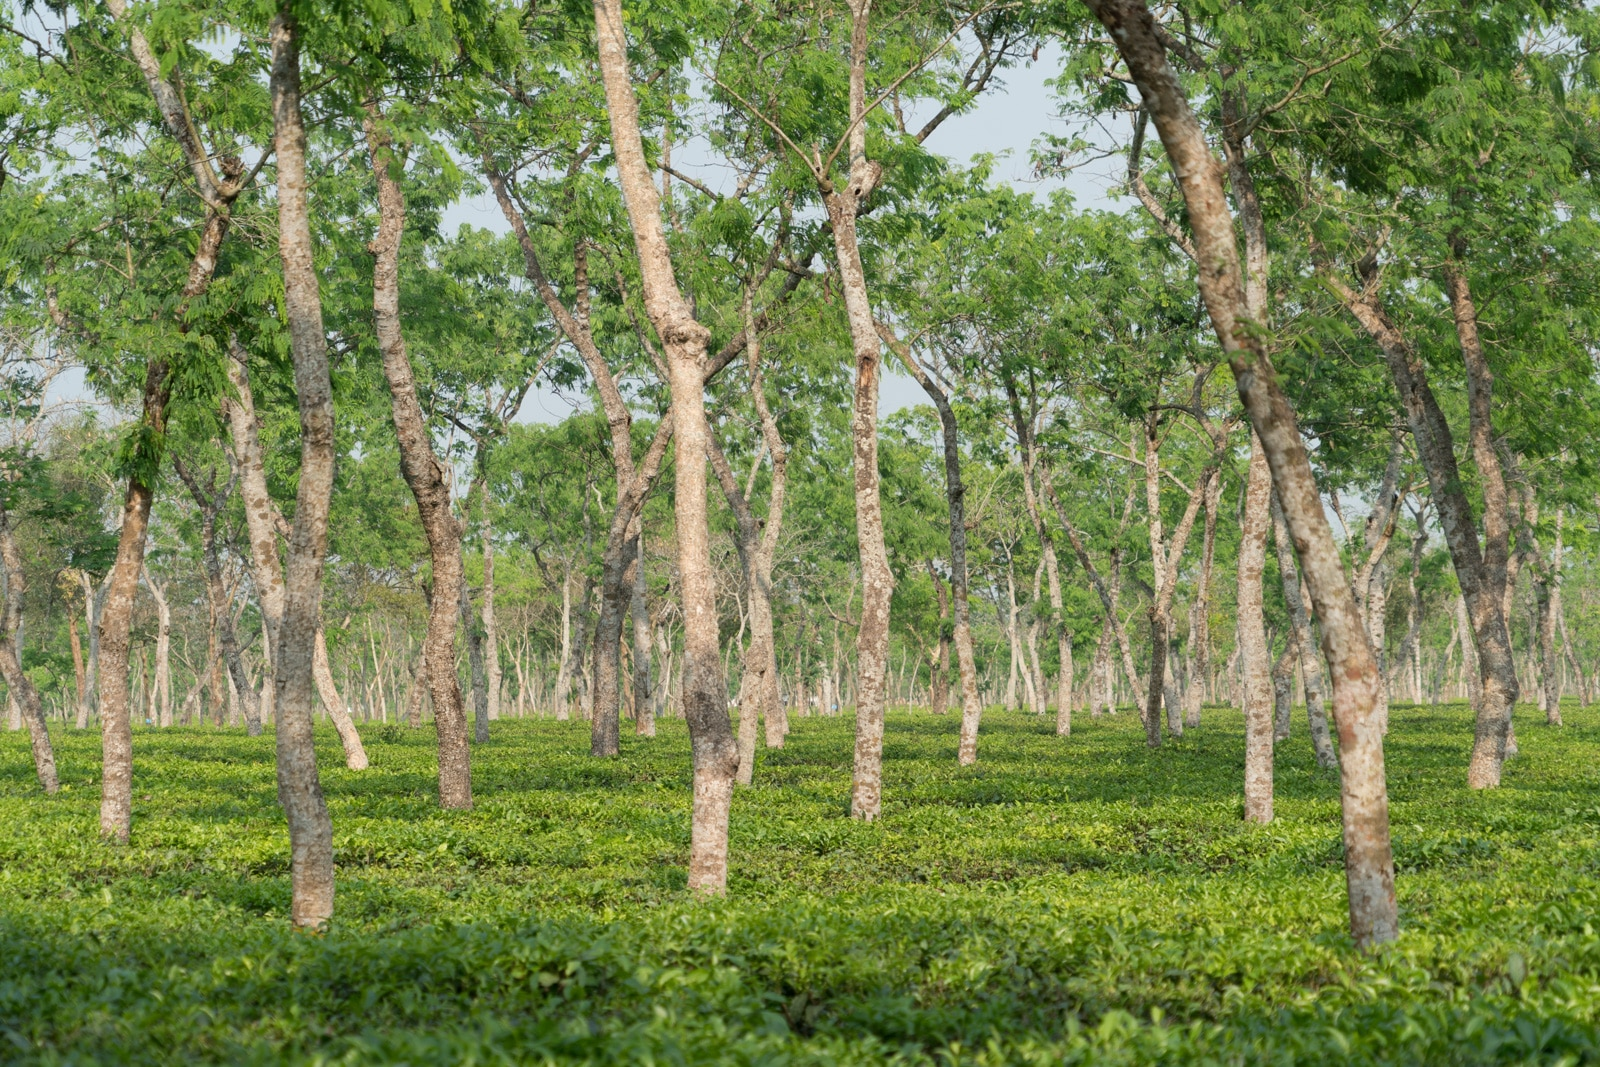 Backpacking in Bangladesh travel guide - Tea plantation in Bangladesh - Lost With Purpose travel blog